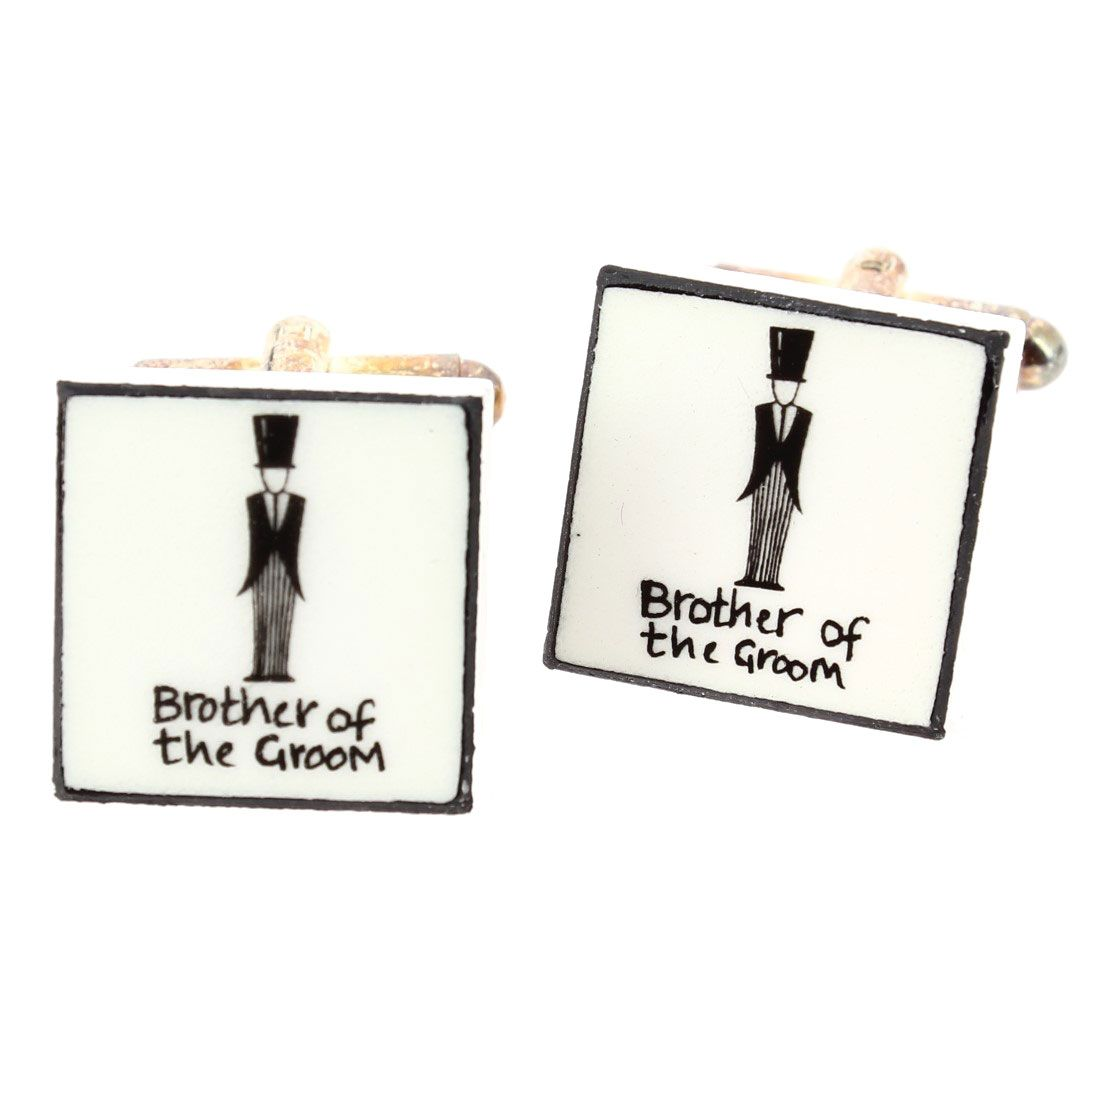 boutons de manchette brother of the groom mariage bouton. Black Bedroom Furniture Sets. Home Design Ideas